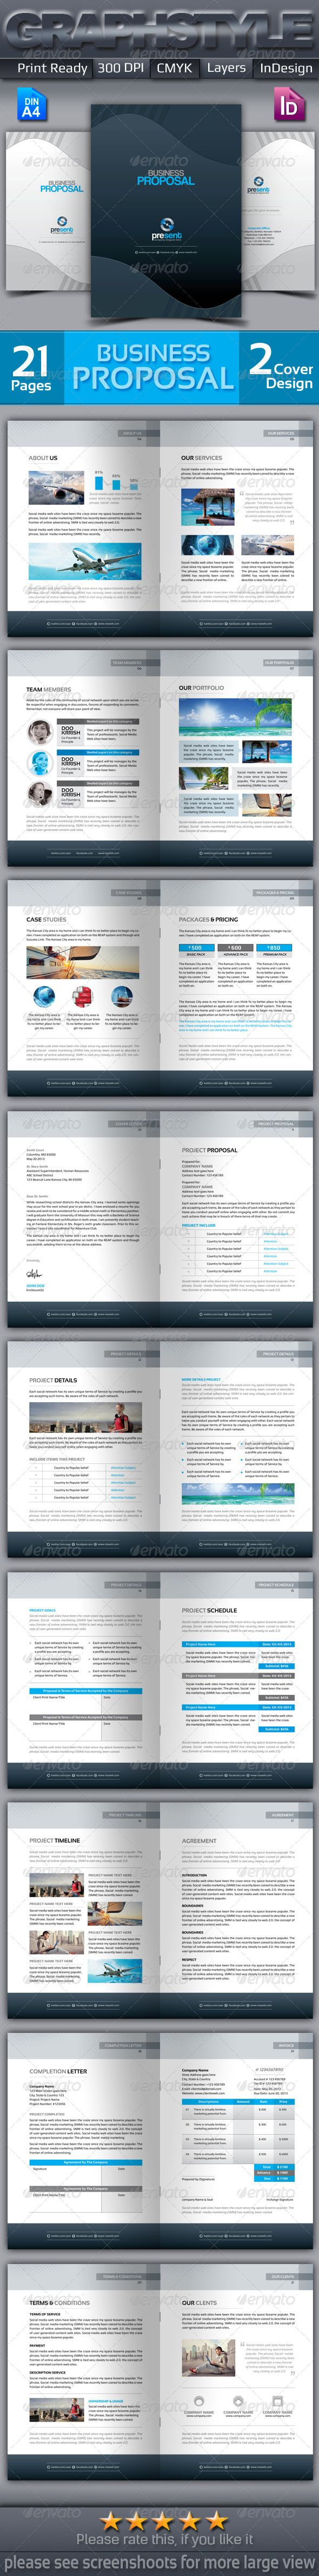 development project proposal template%0A Present Business Proposal